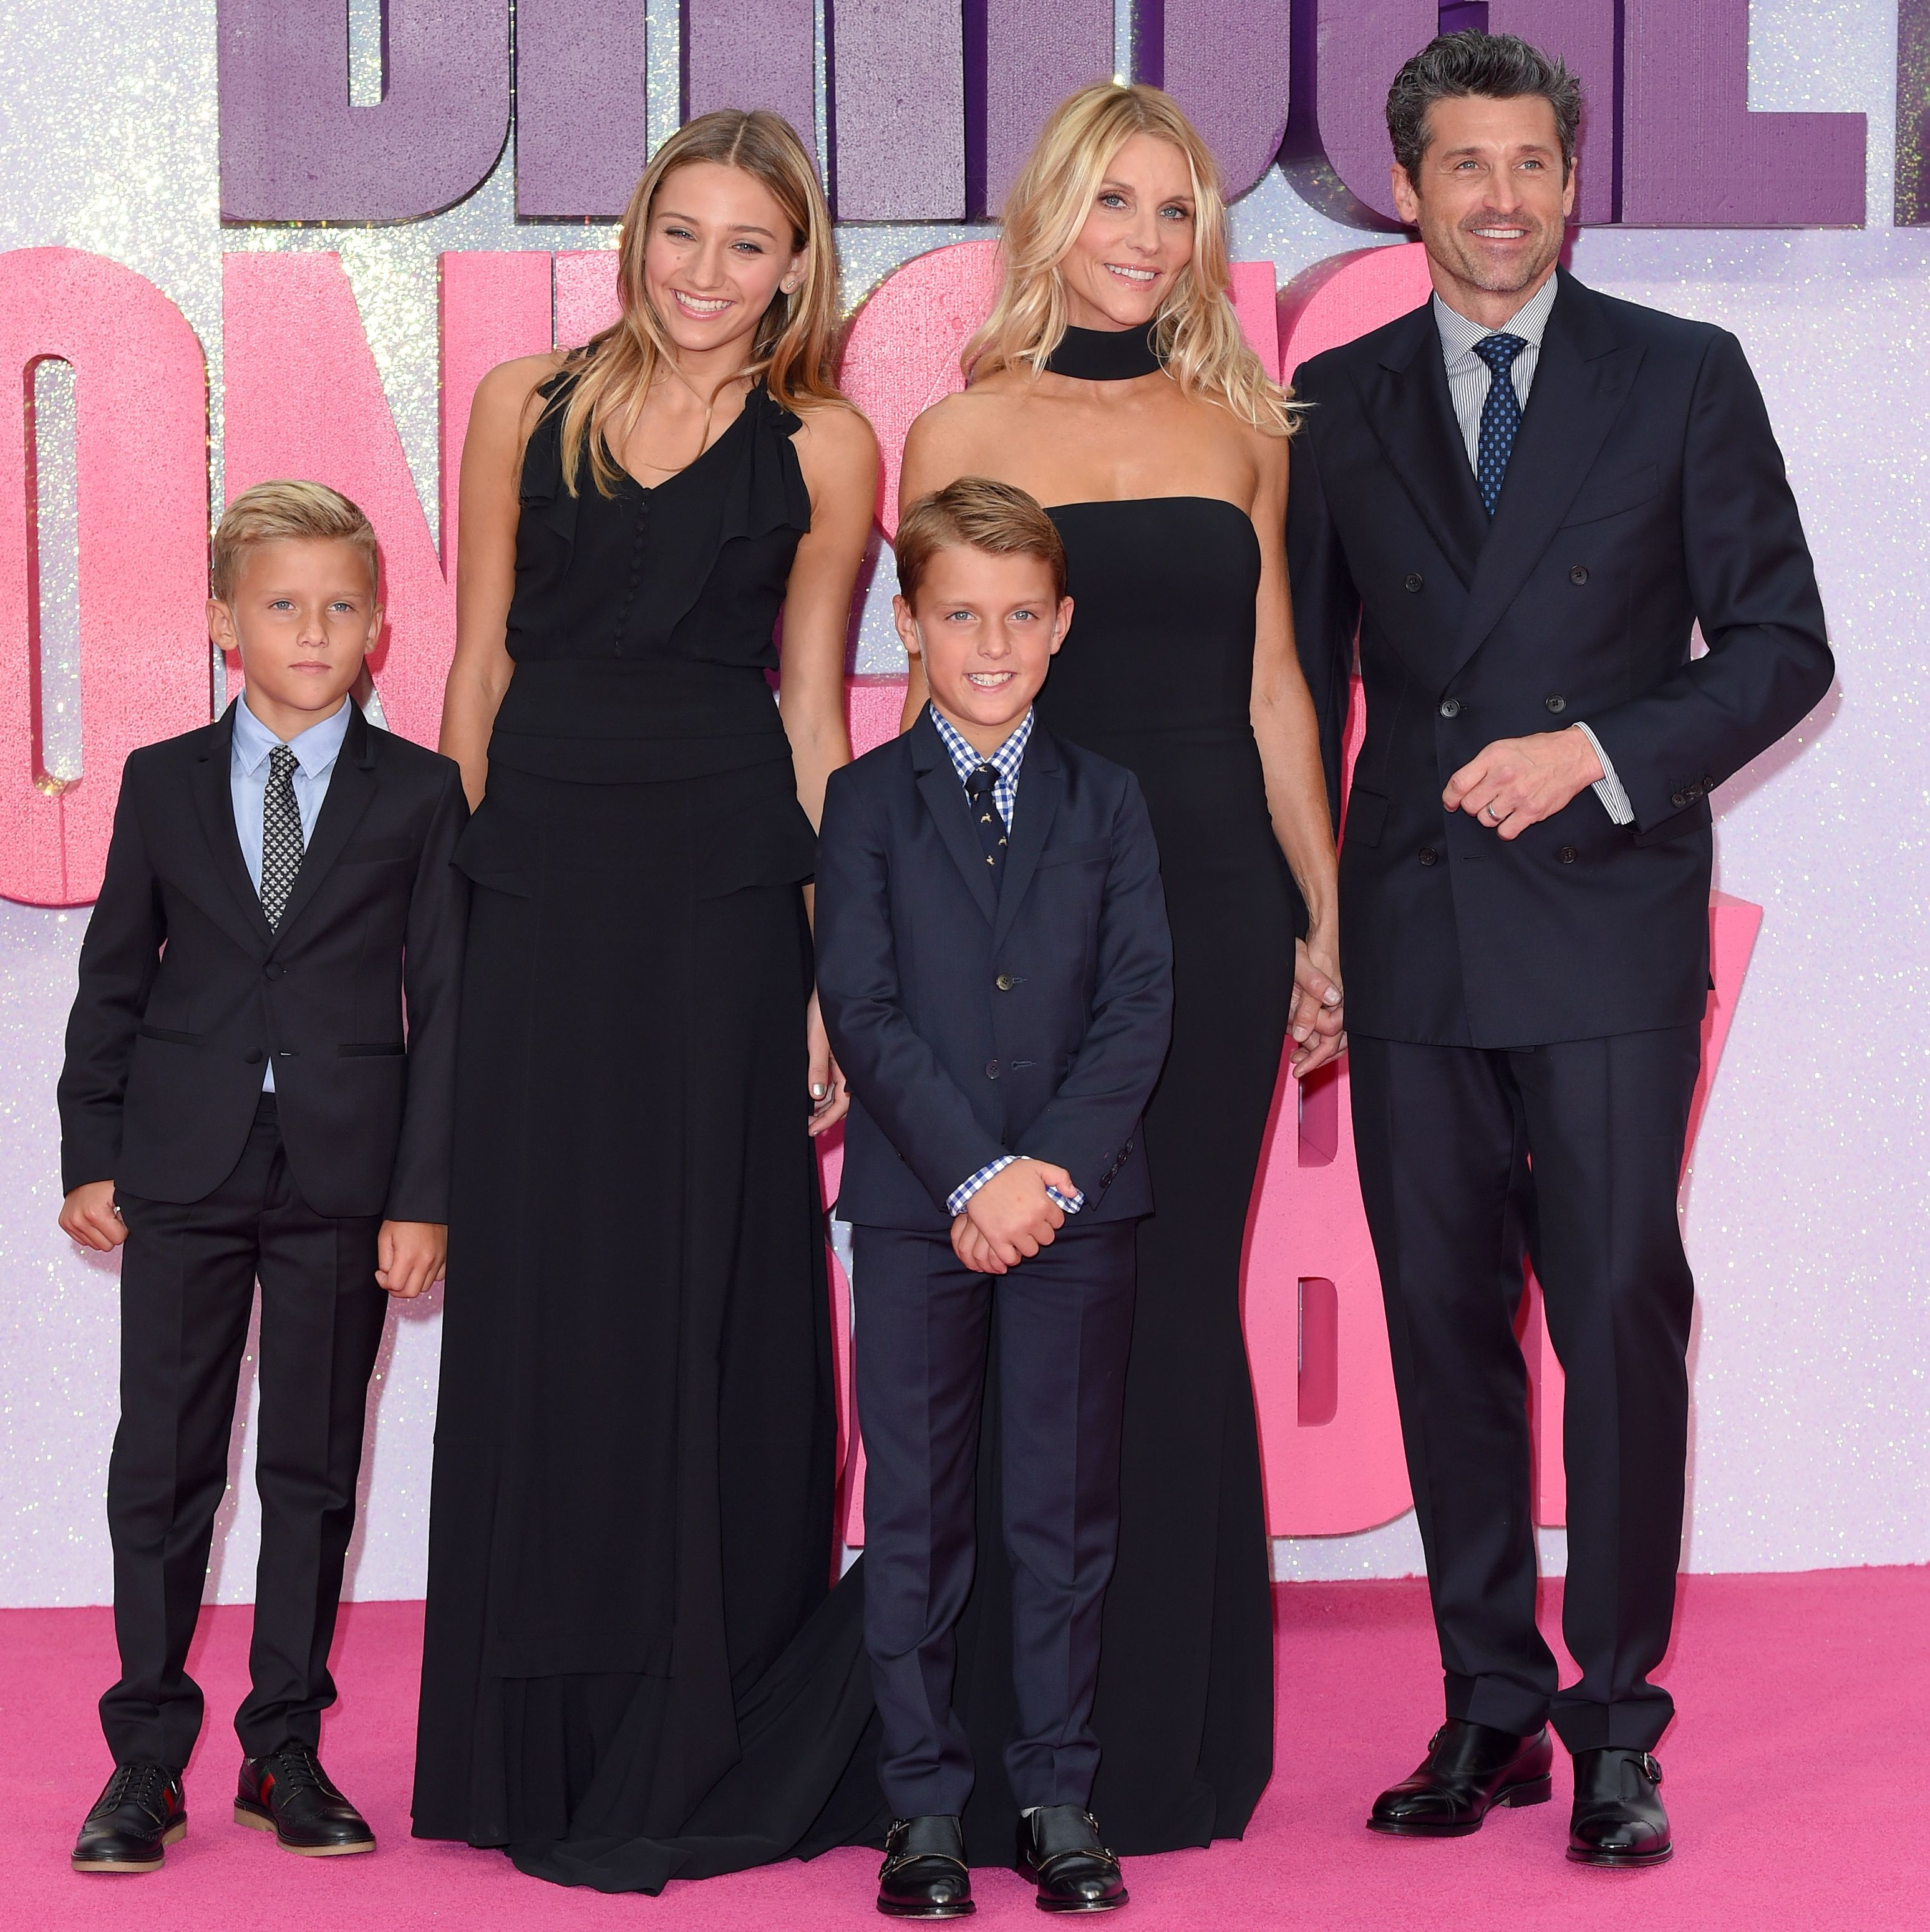 Every Question You Have About Patrick Dempsey's Wife and Three Kids, Answered